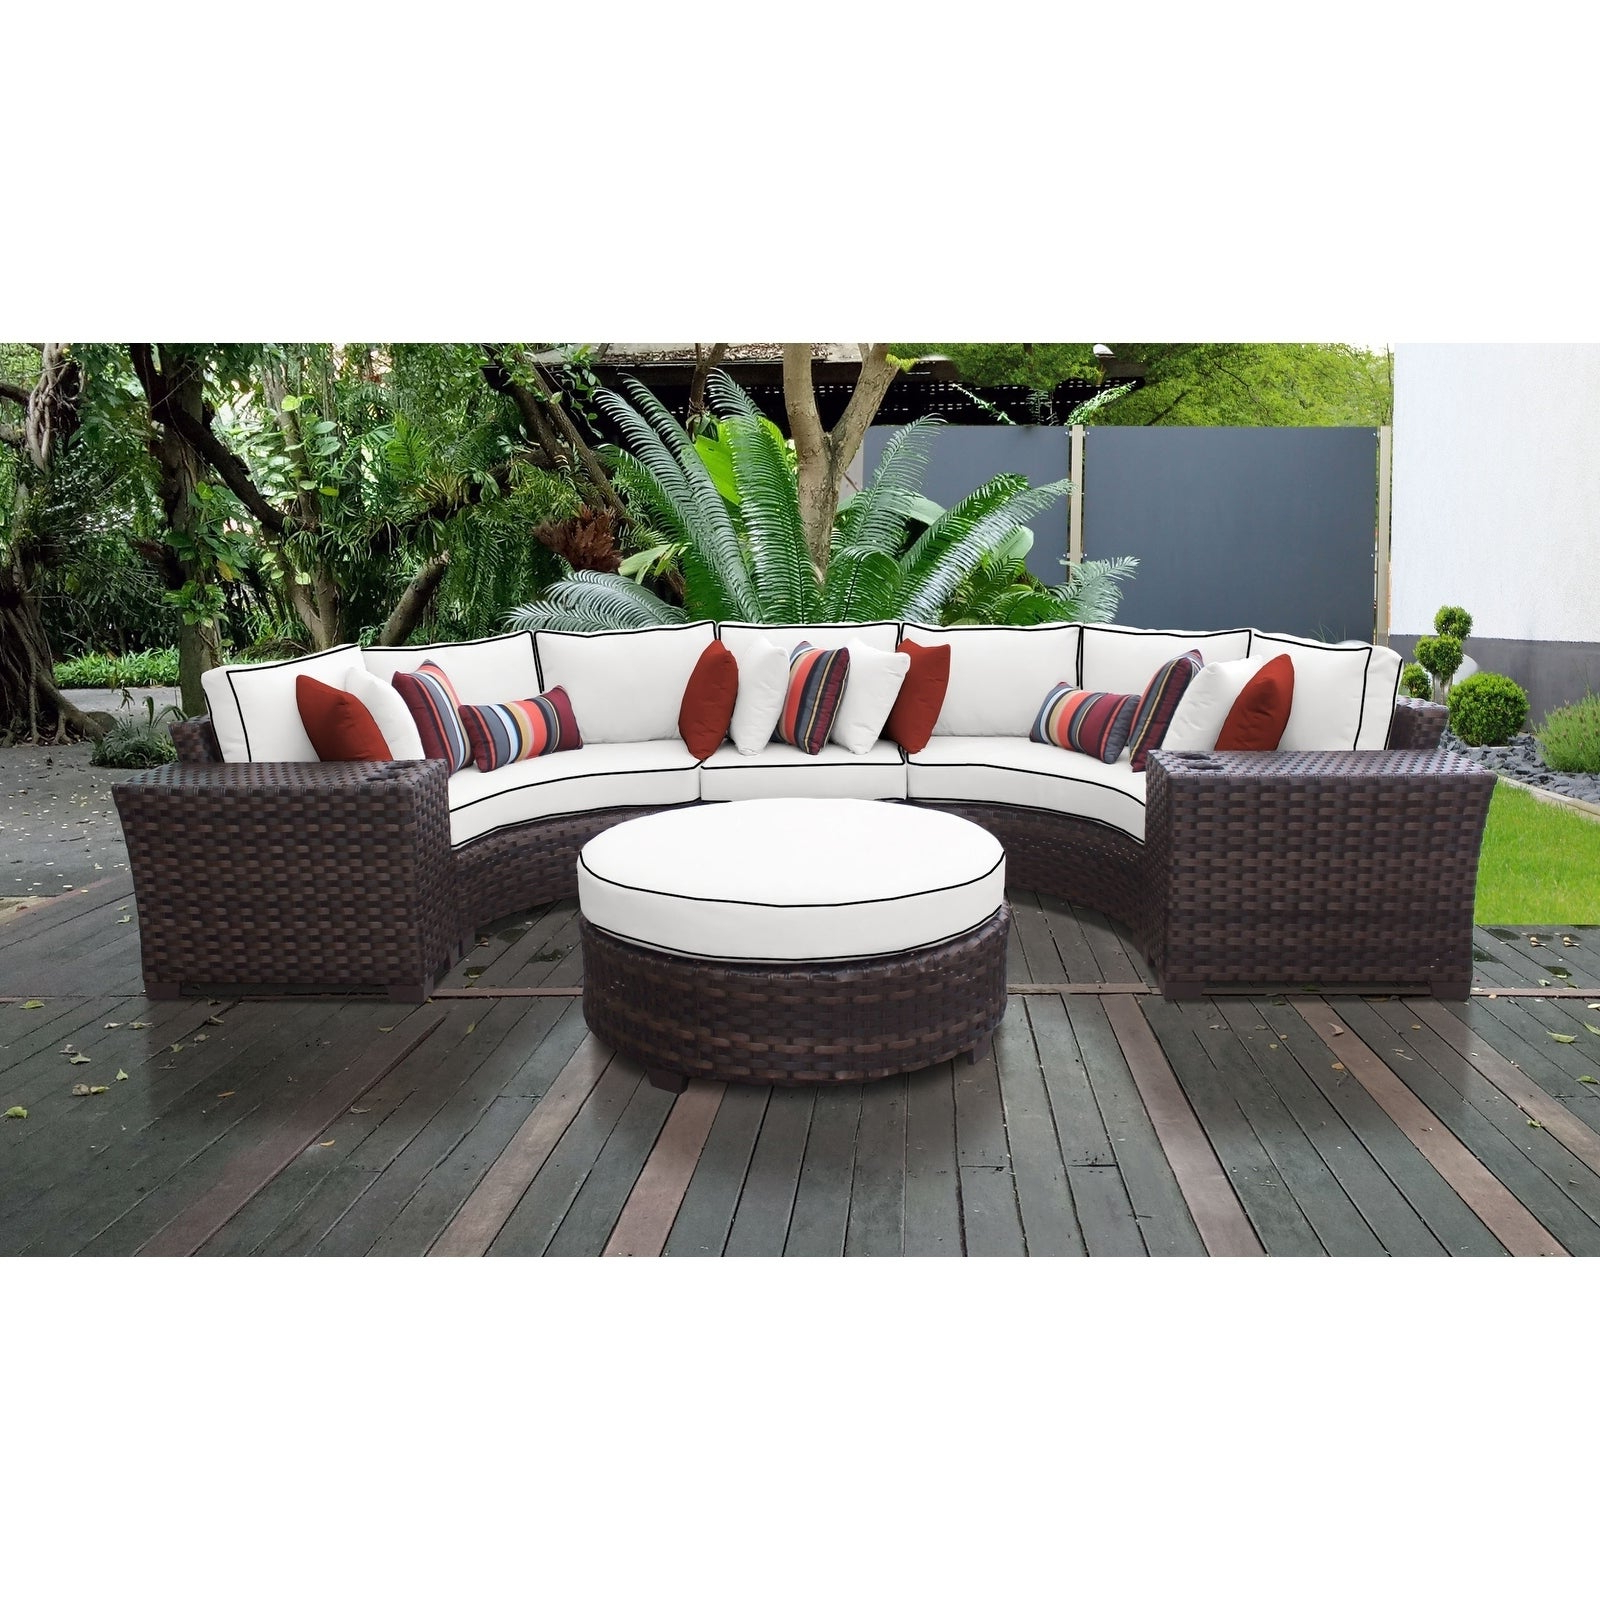 Most Up To Date Camak Patio Sofas With Cushions With Regard To Kathy Ireland River Brook 6 Piece Outdoor Wicker Patio Furniture Set 06C (View 15 of 20)